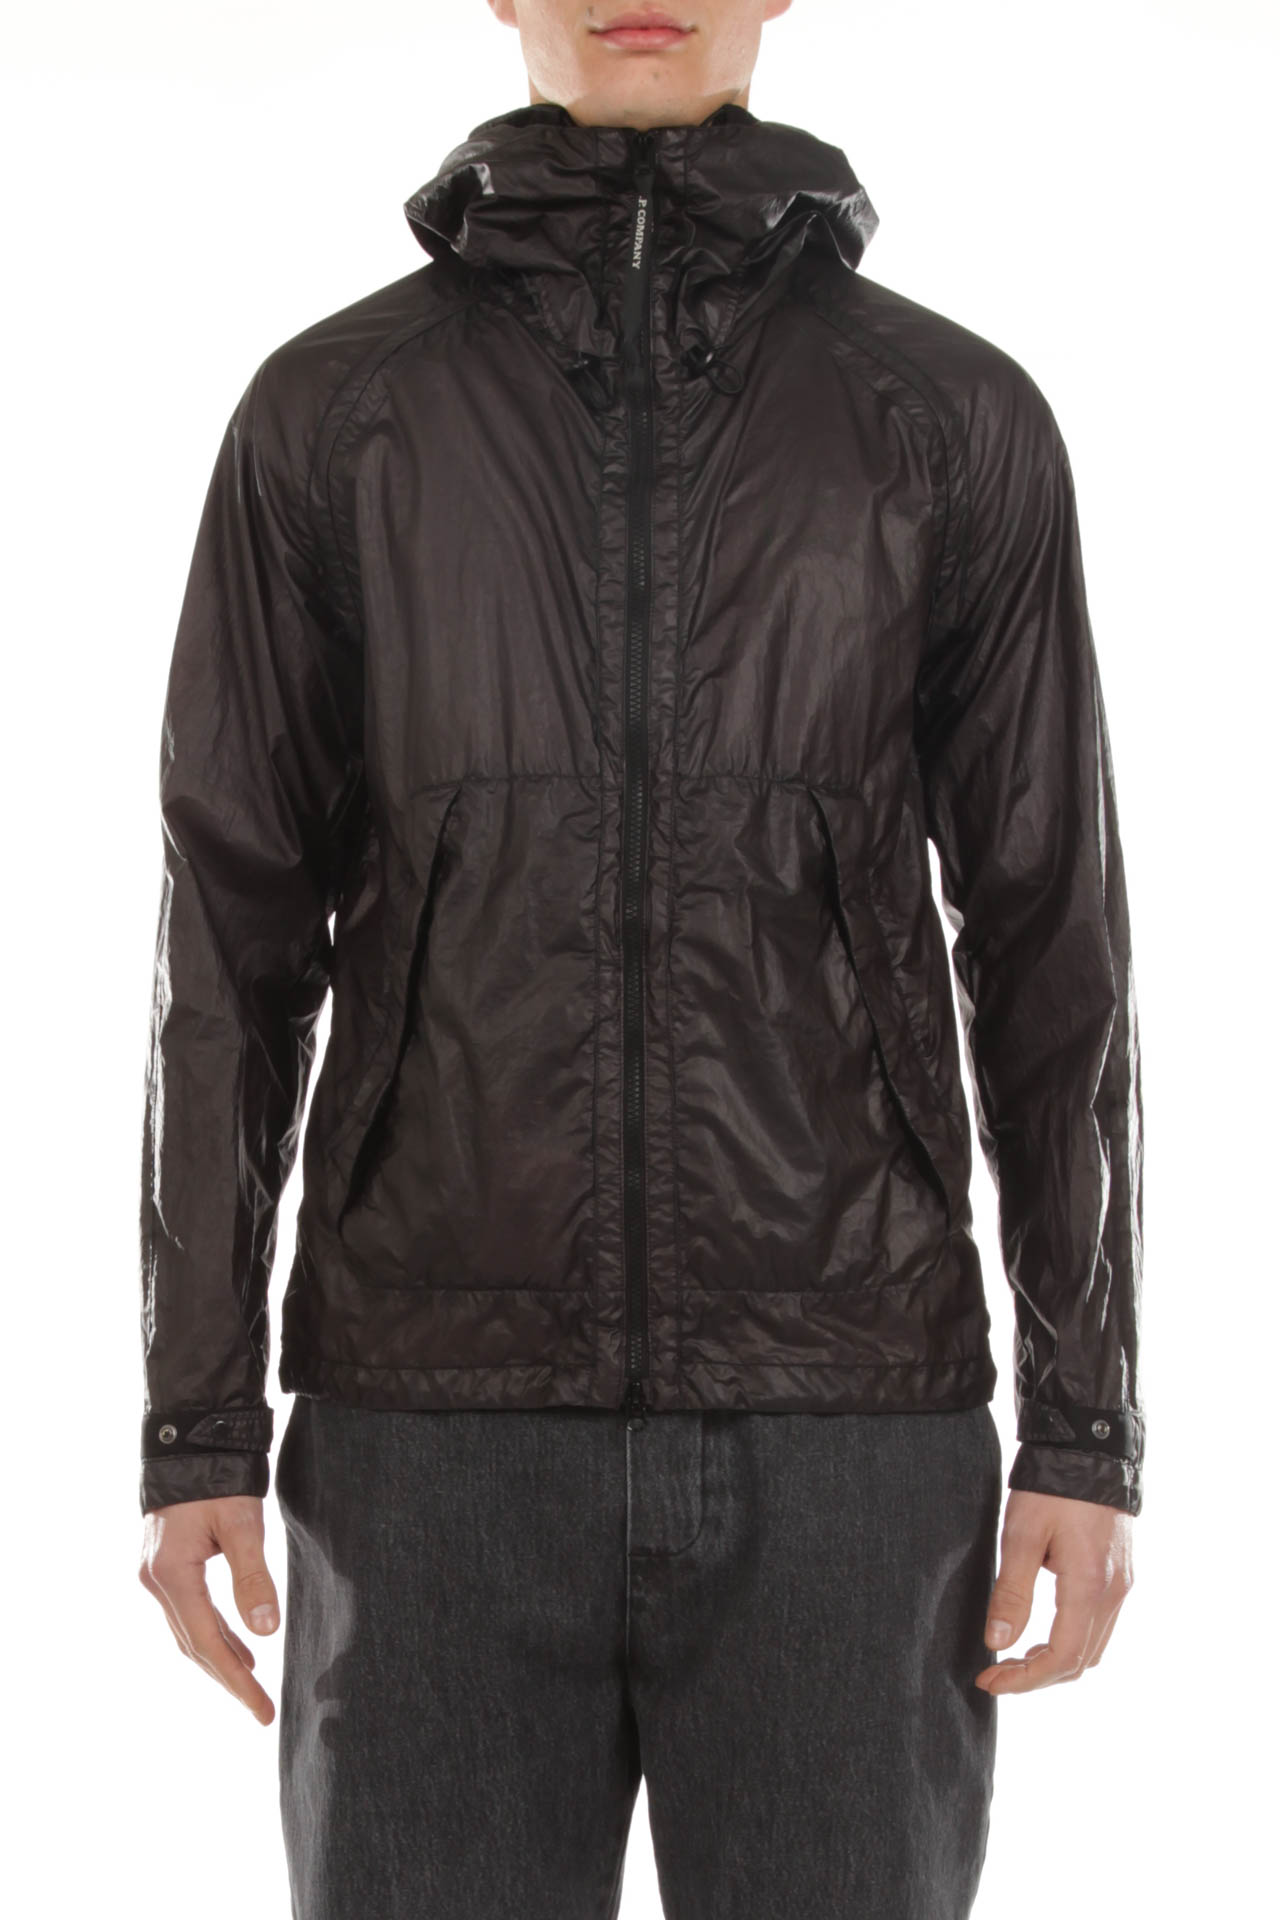 C.P.COMPANY | Outerwear | 10CMOW181A005576G999